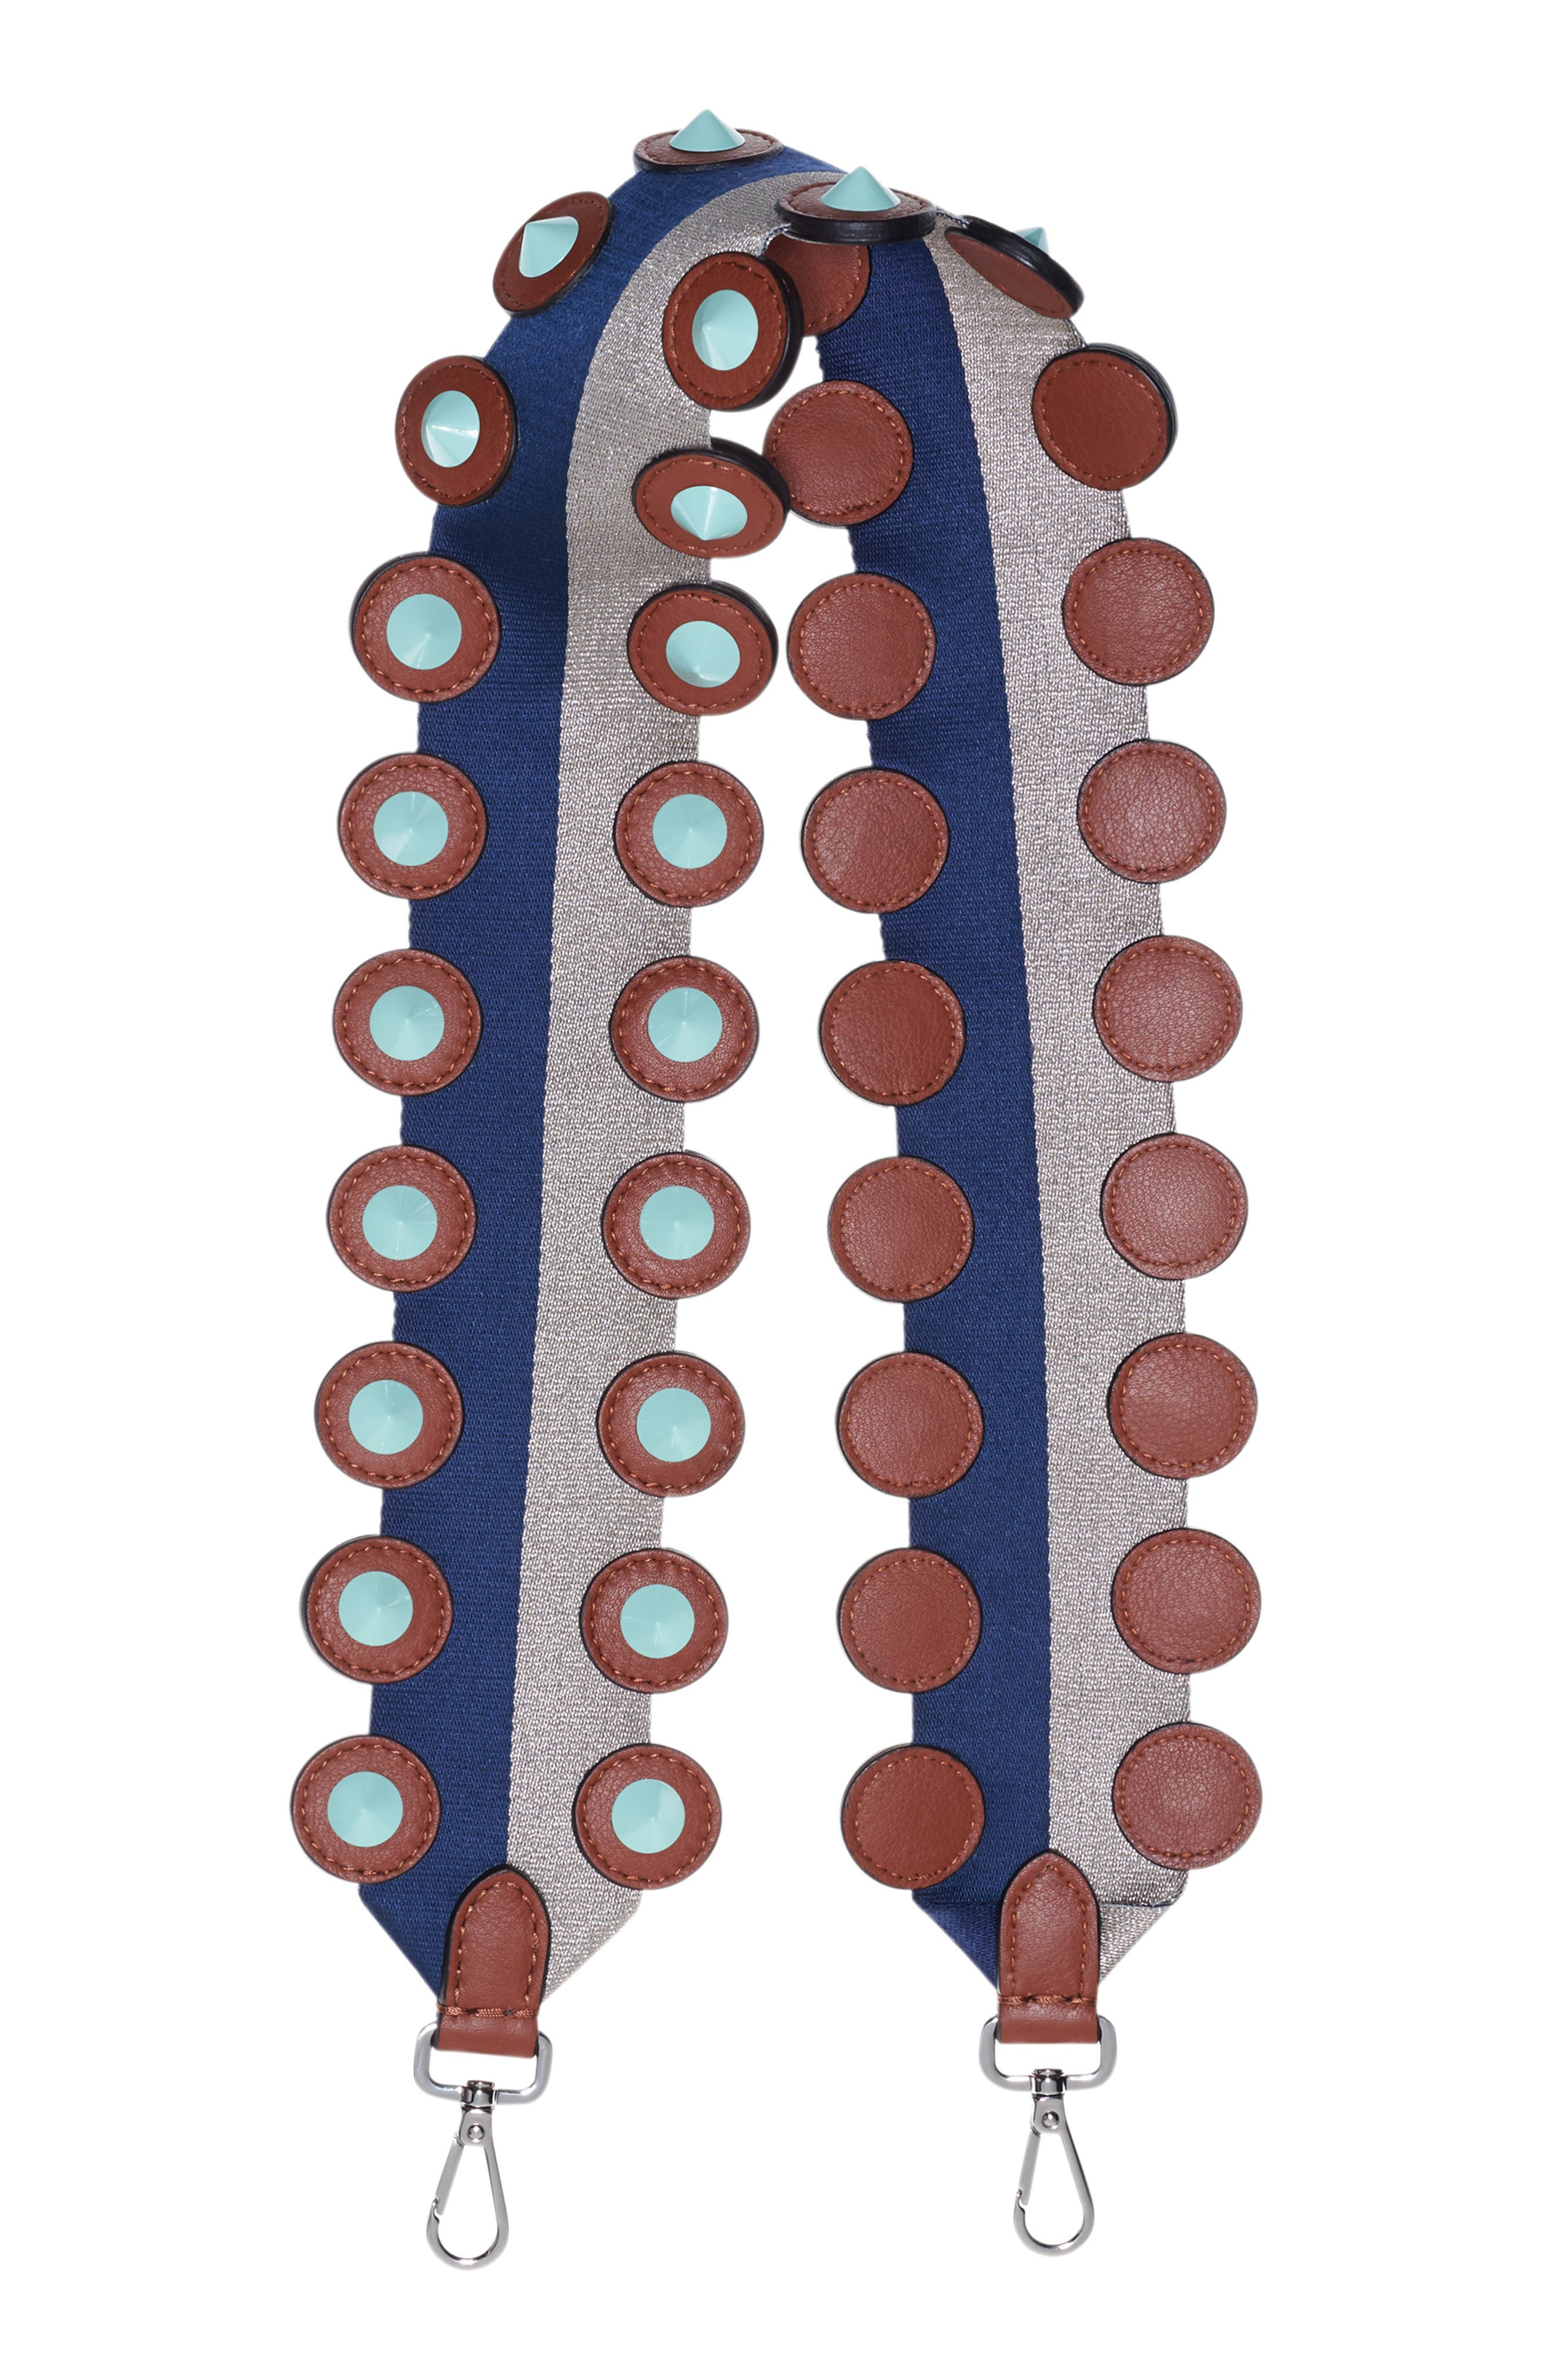 Strap You Studded Leather Guitar Bag Strap,                         Main,                         color, NAVY/SILVER